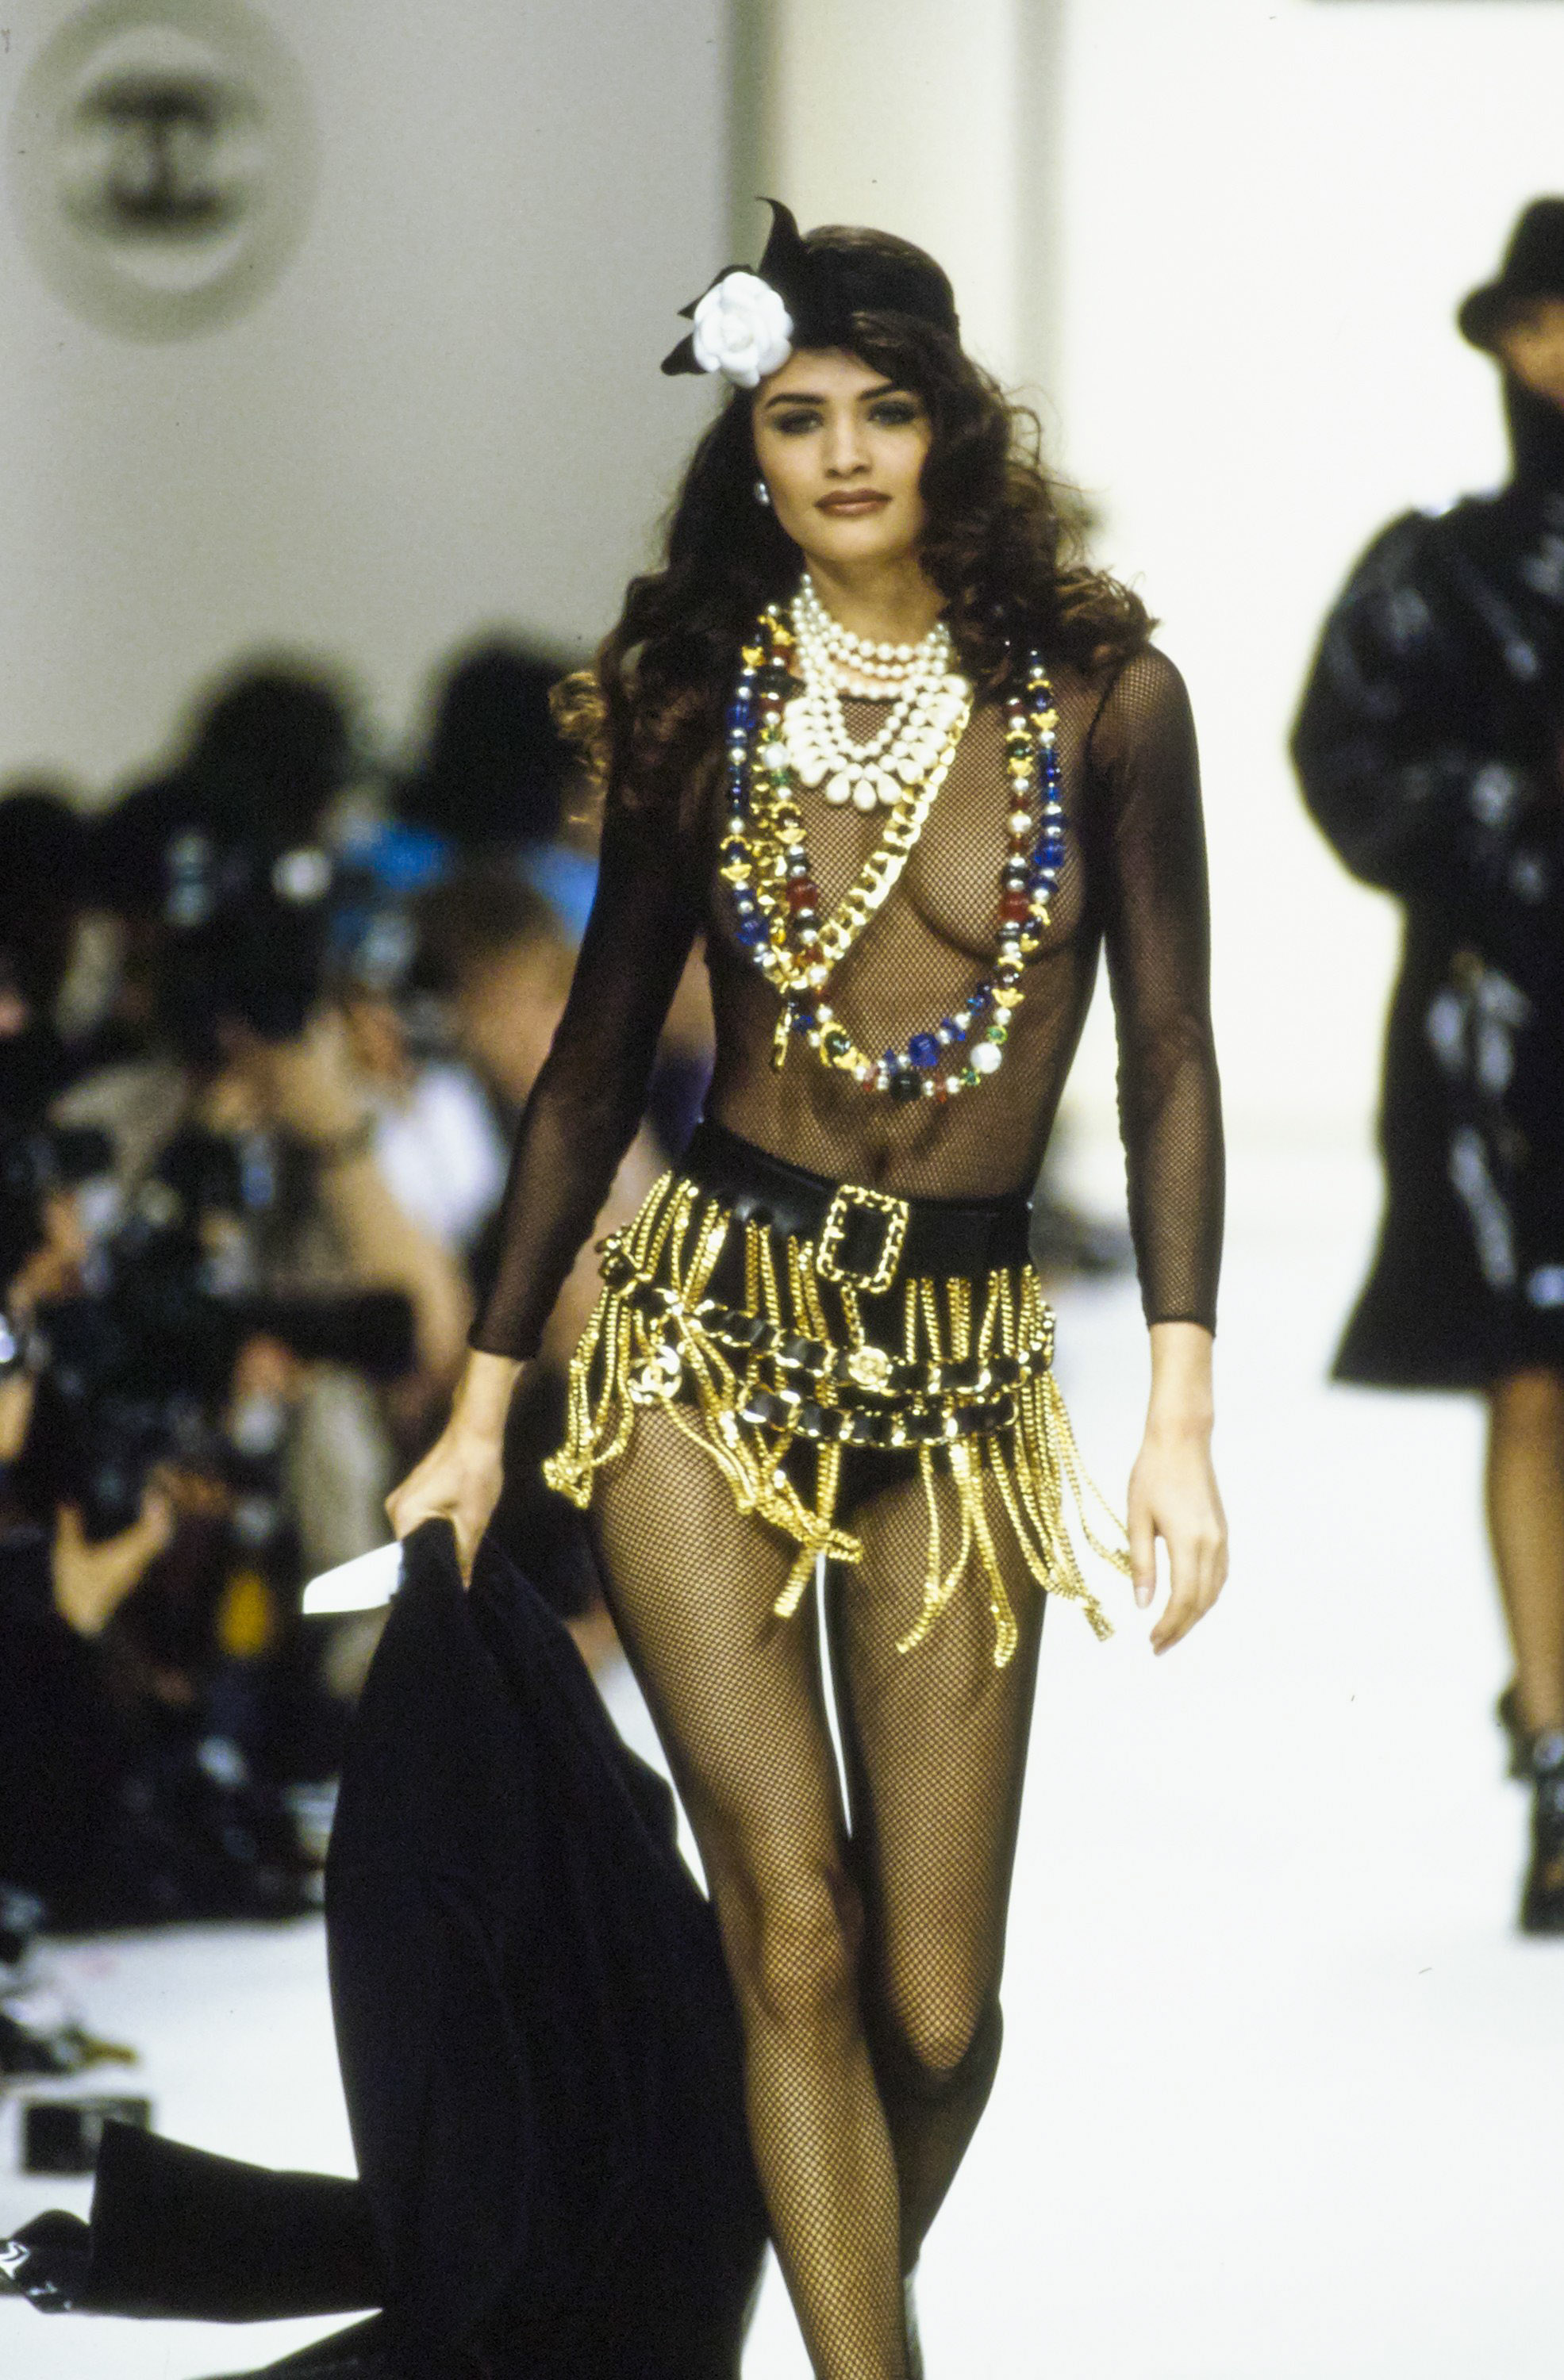 chanel in the '90s - chanel-fall-1991-ready-to-wear-CN10052939-helena-christensen